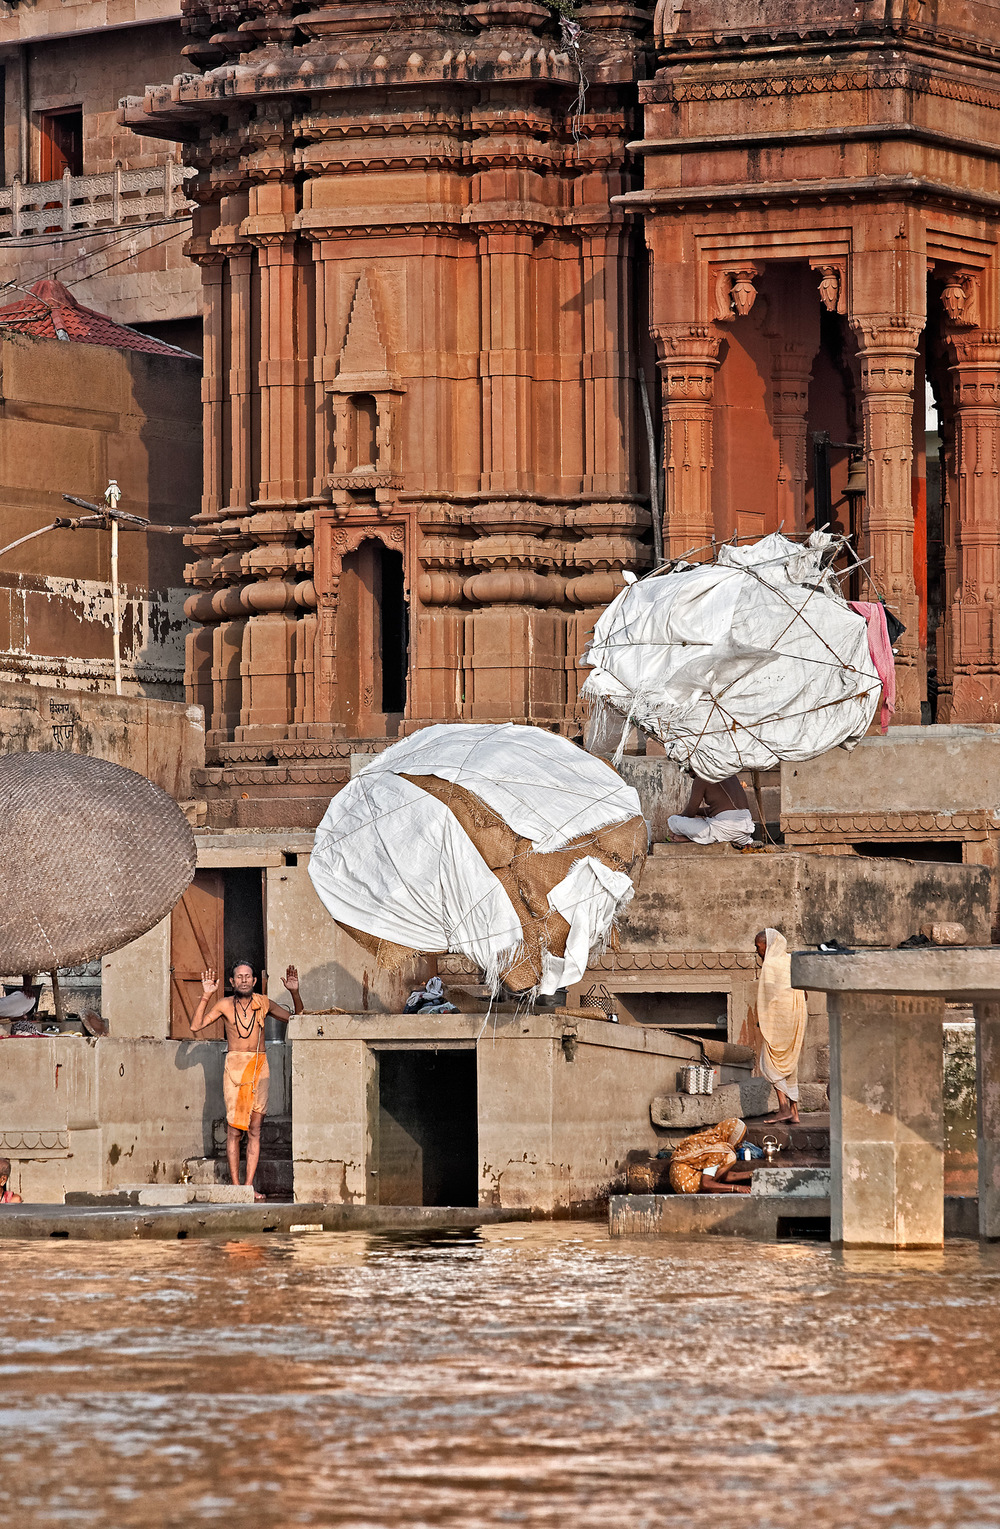 Meditation on the ghats, Varanasi, India